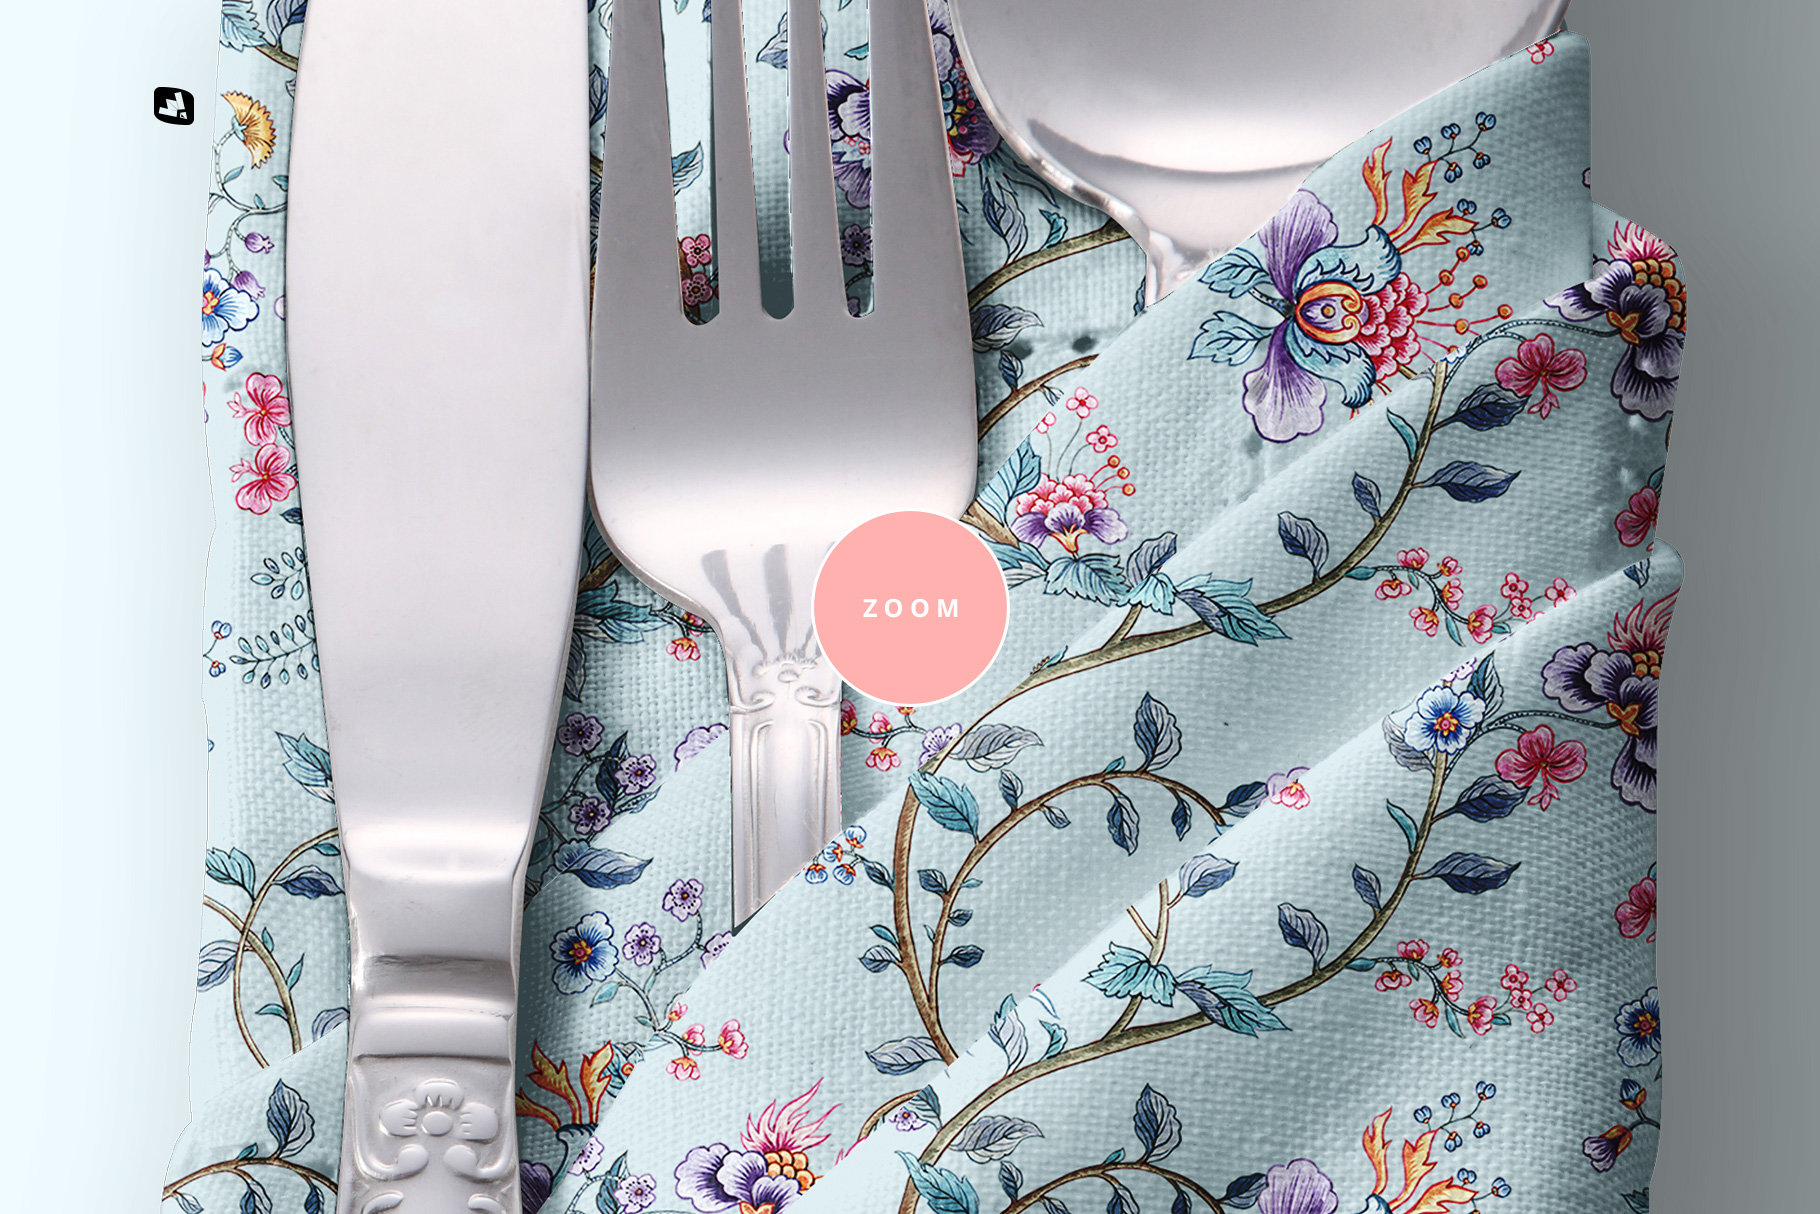 zoomed in image of the folded napkin with utensils mockup